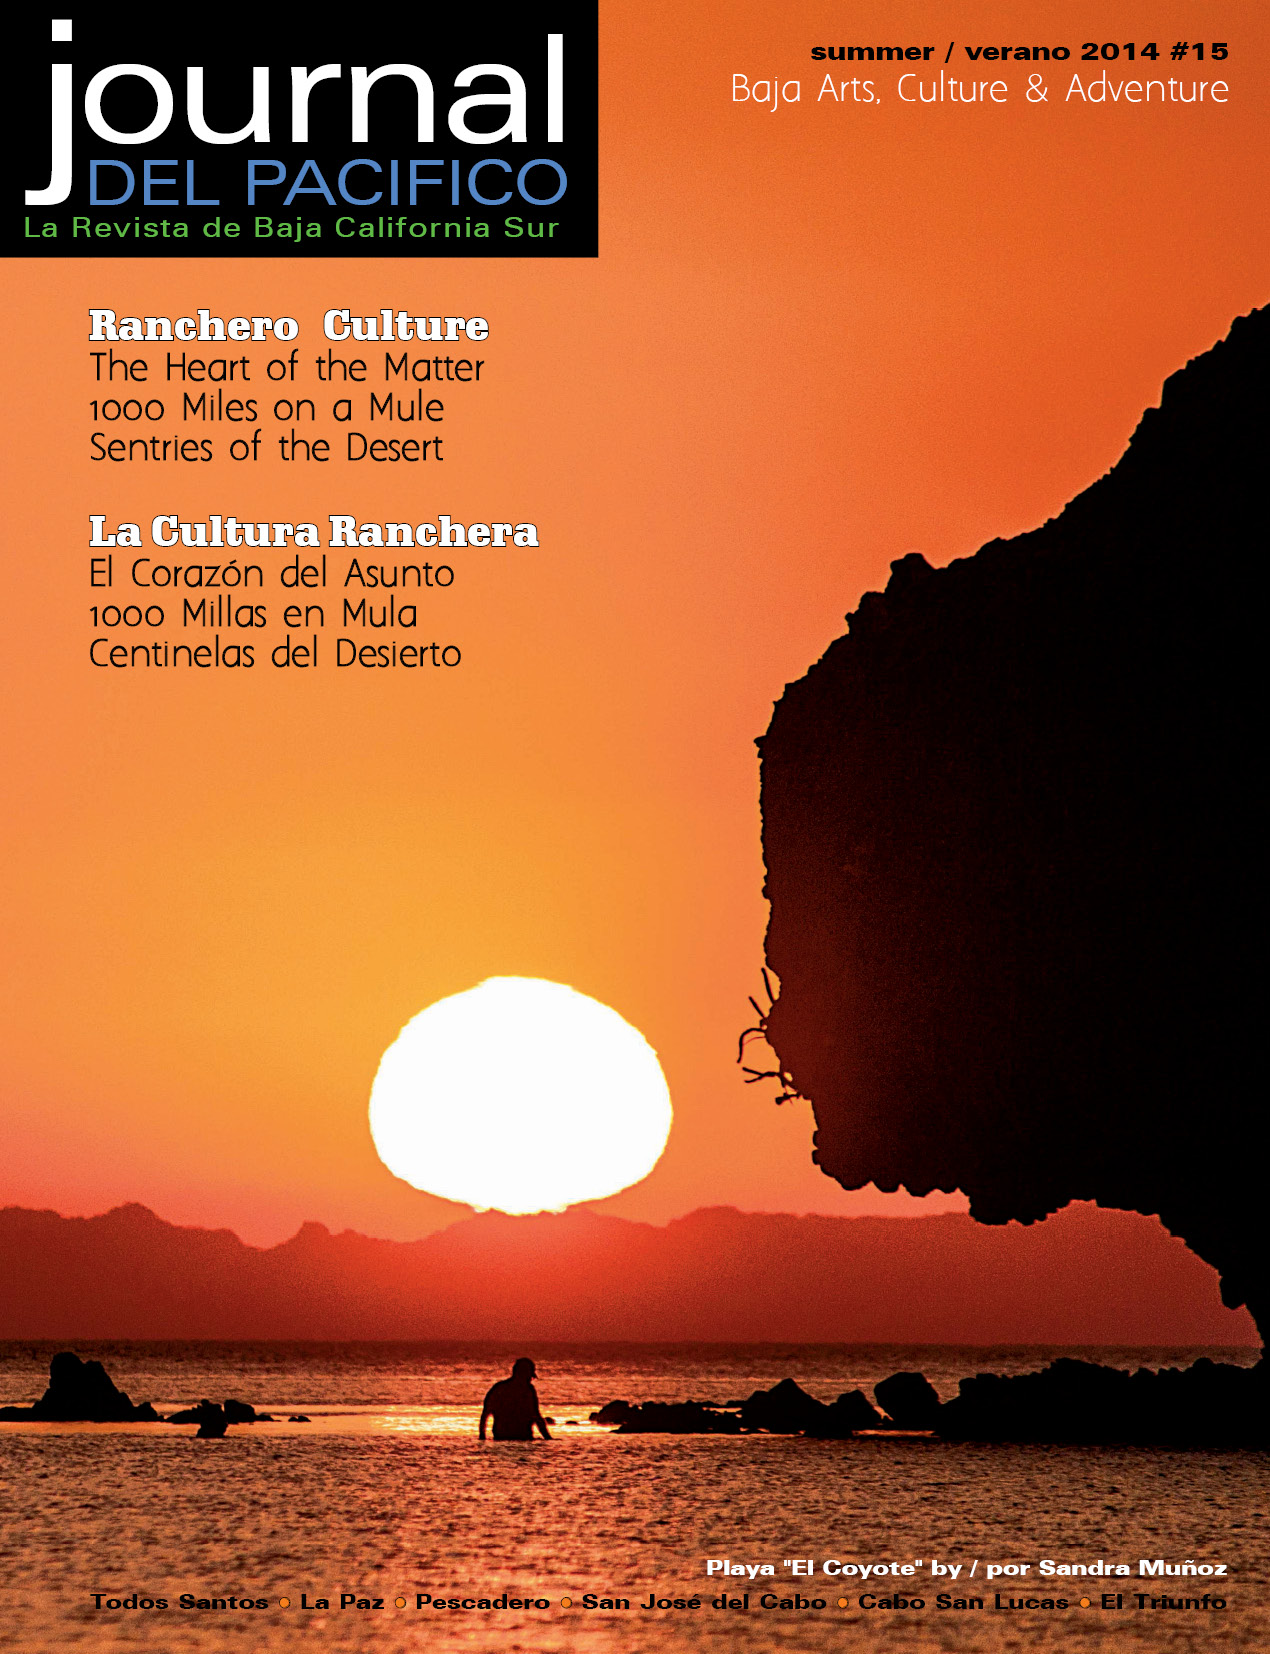 Summer 2014 Issue of Journal del Pacifico